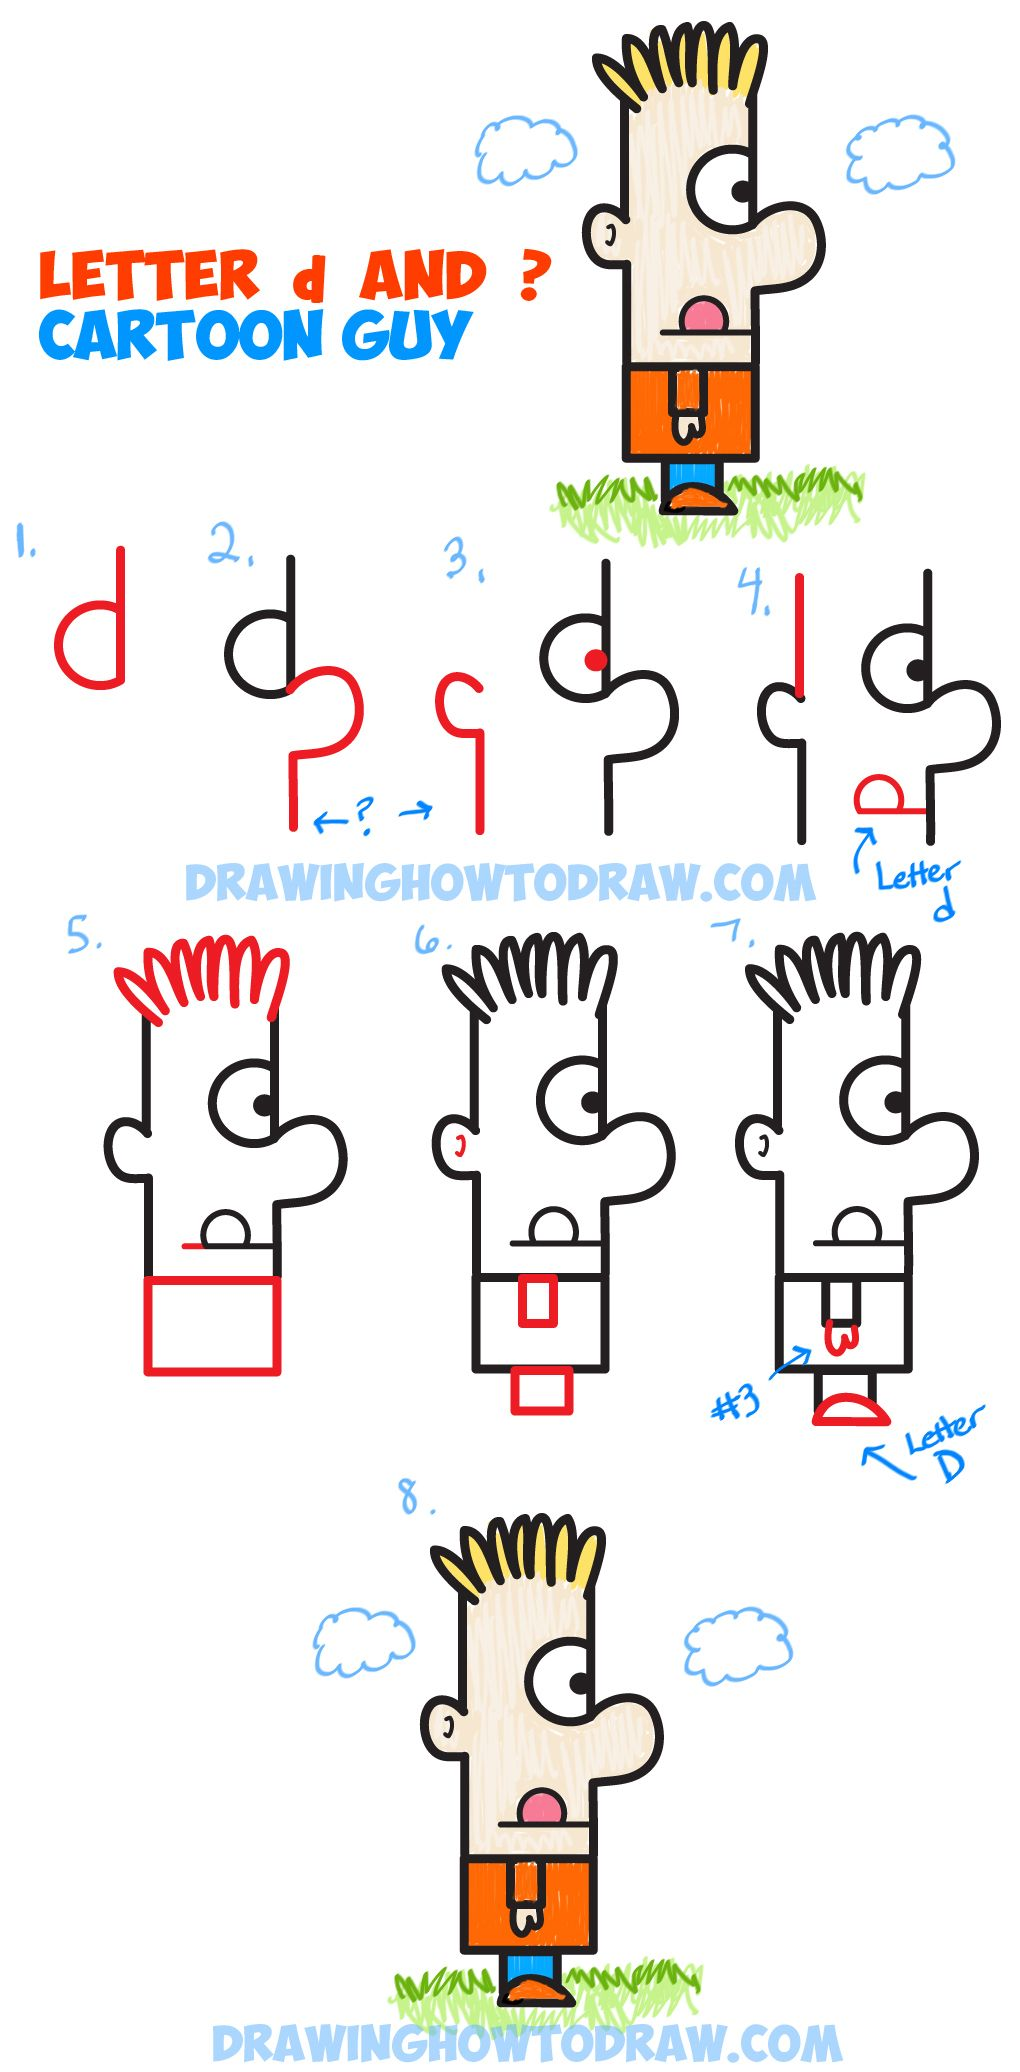 Scribble Drawing Question : Learn how to draw a cartoon guy from letter d and